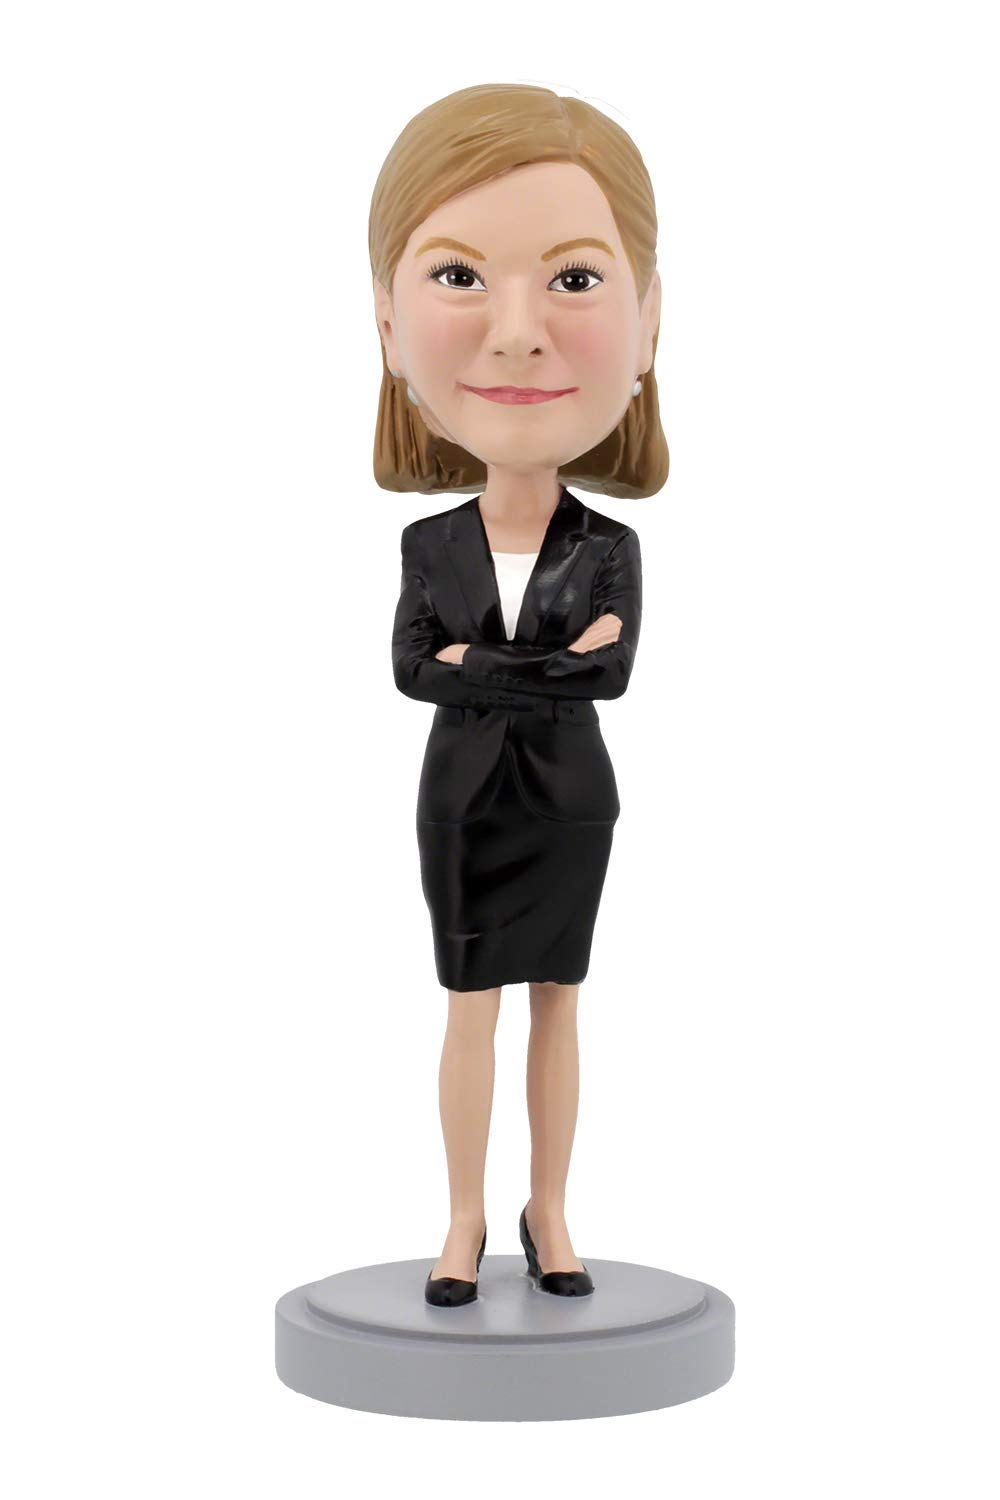 Custom Bobbleheads - Female Executive Body - Personalized Gifts by Royal Bobbles